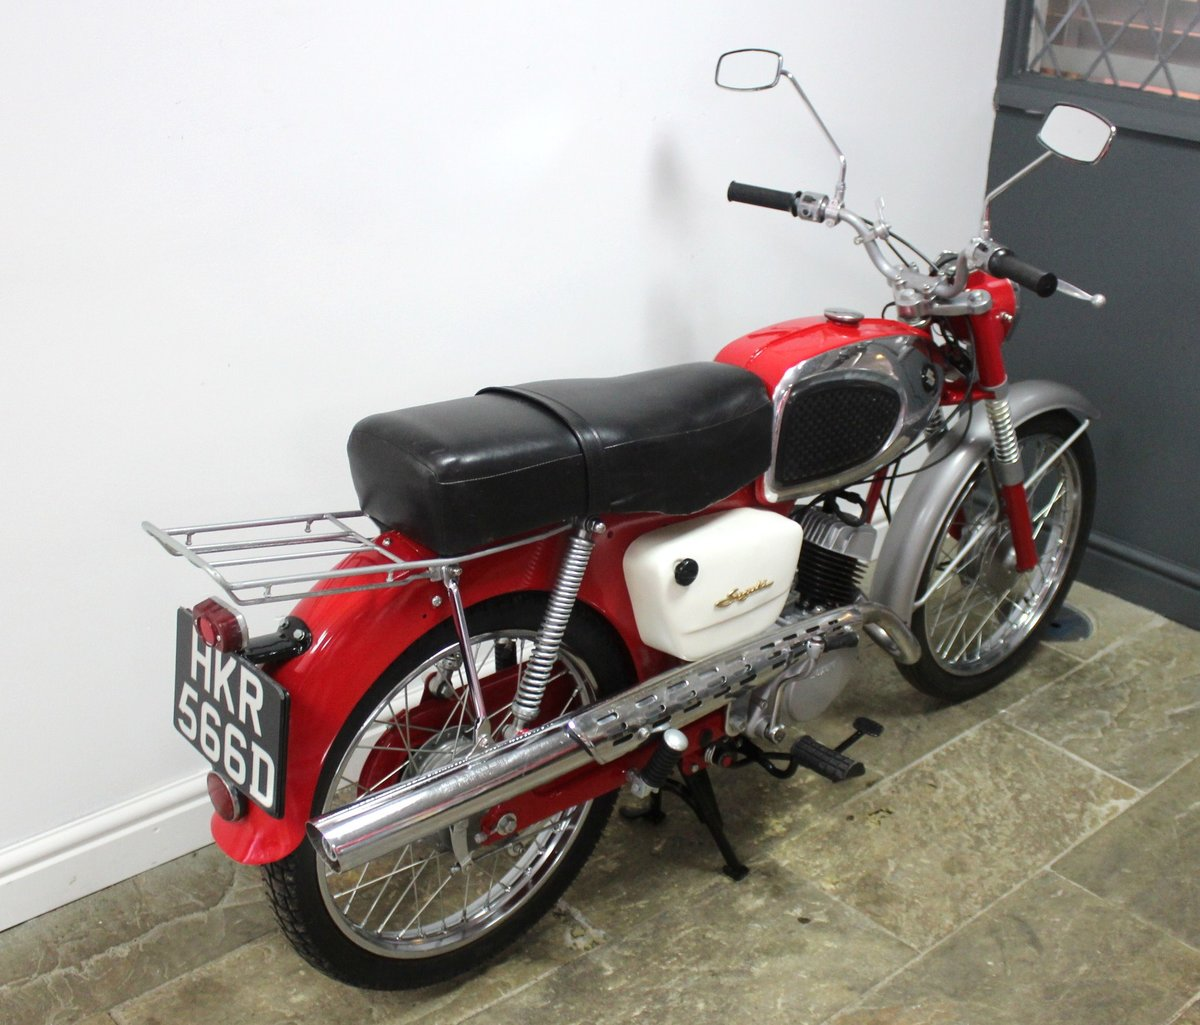 1966 Suzuki 80cc K11 Sports Excellent Condition SOLD (picture 2 of 6)